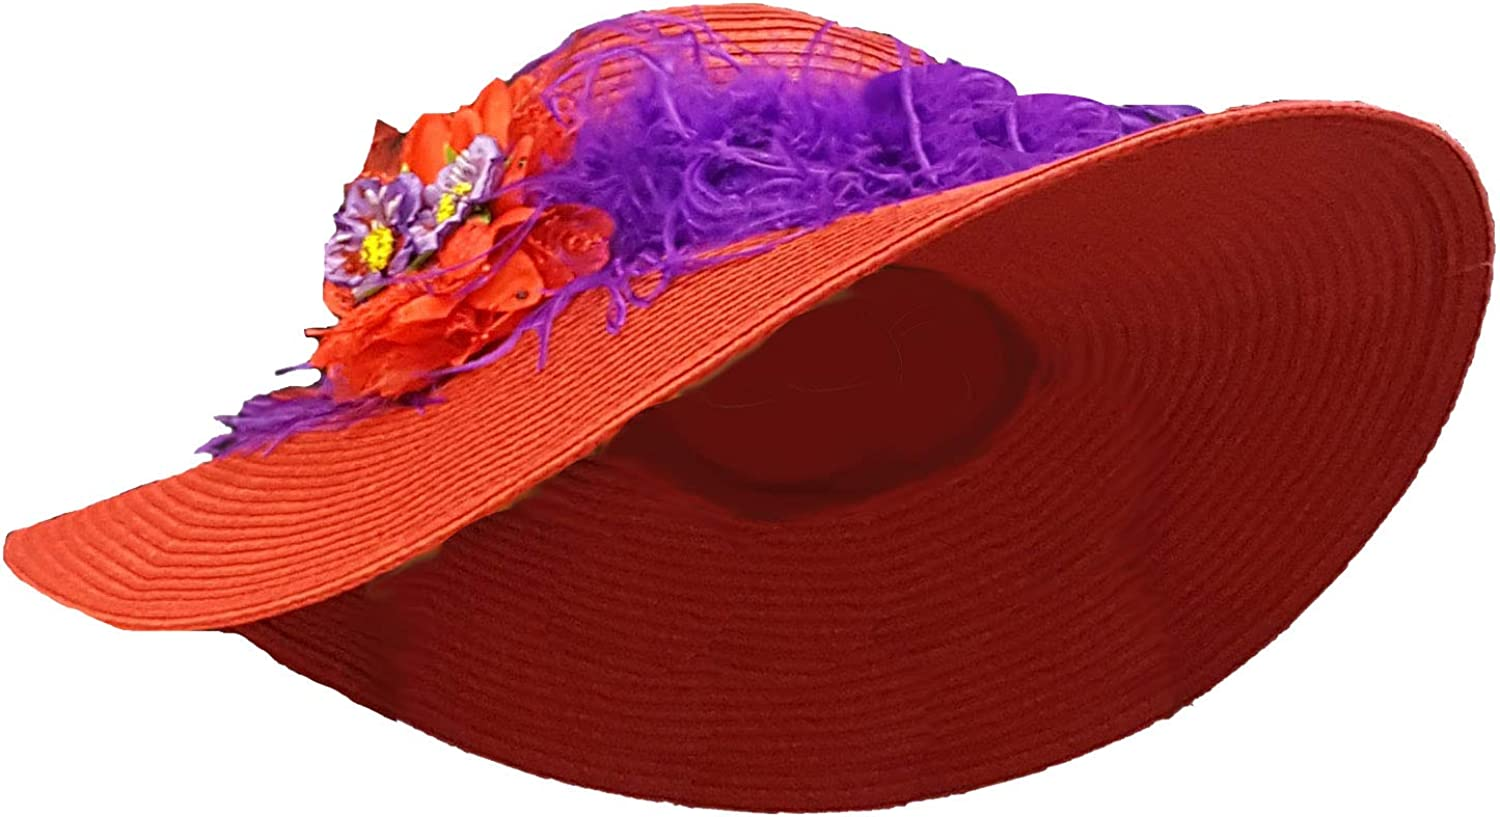 Red Very popular Hat with Purple Feather Hand-Painted Band Boa and Flowers Ranking TOP10